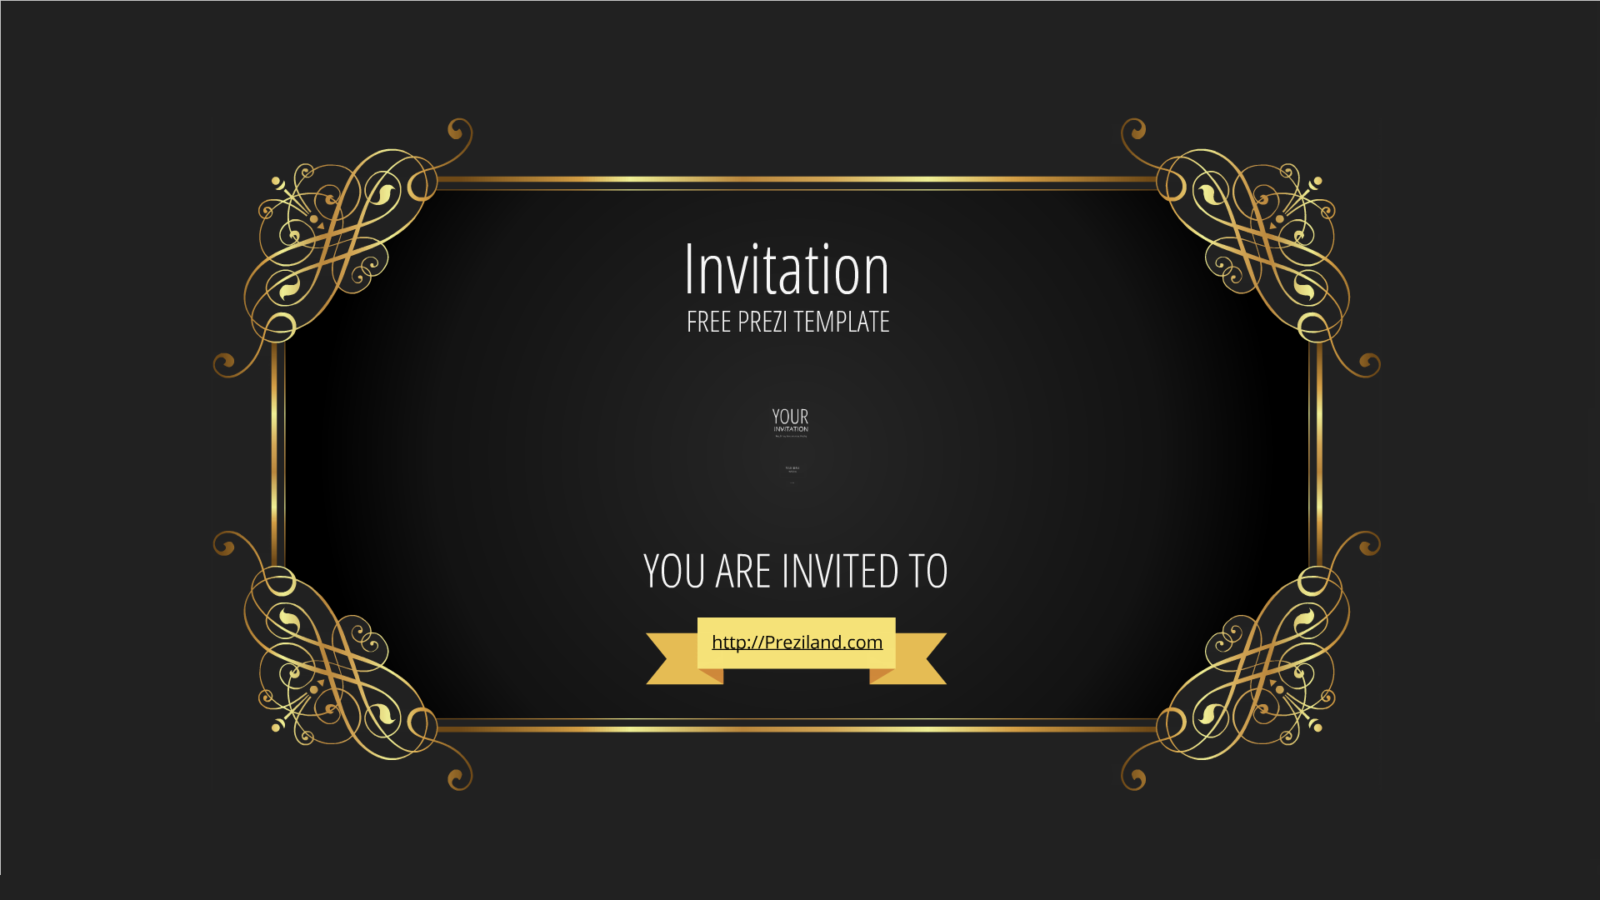 Free prezi template invitation preziland for Free prezi templates